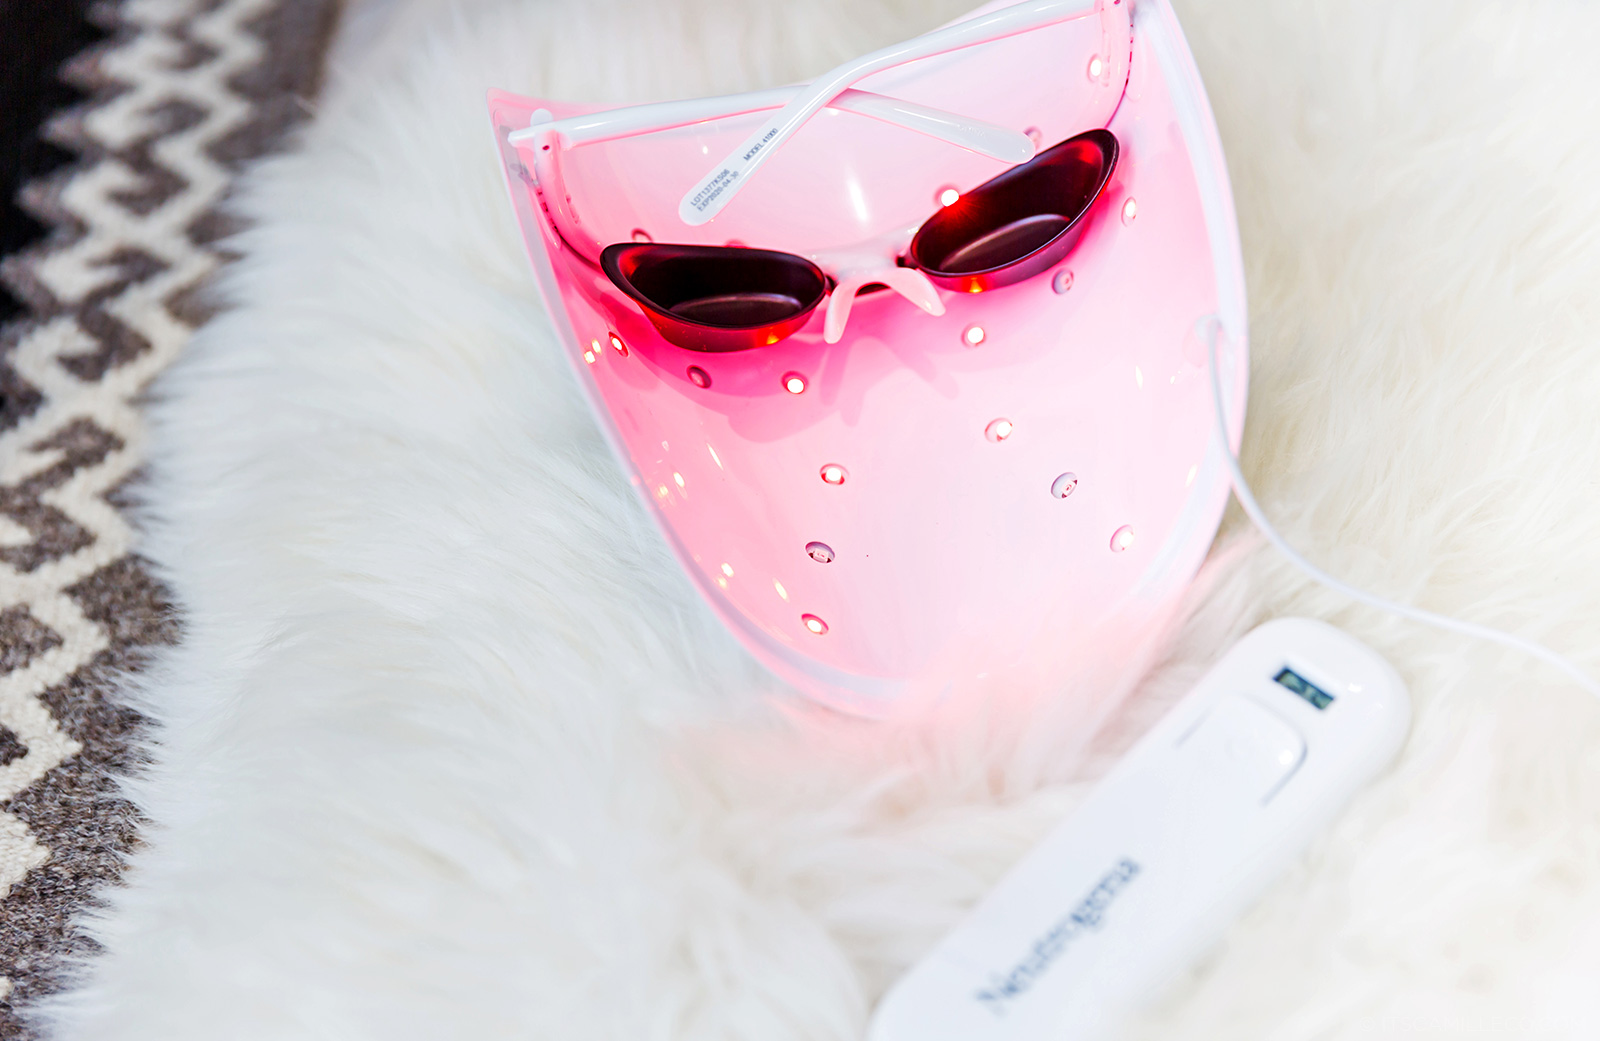 Neutrogena Fine Fairness Light Mask